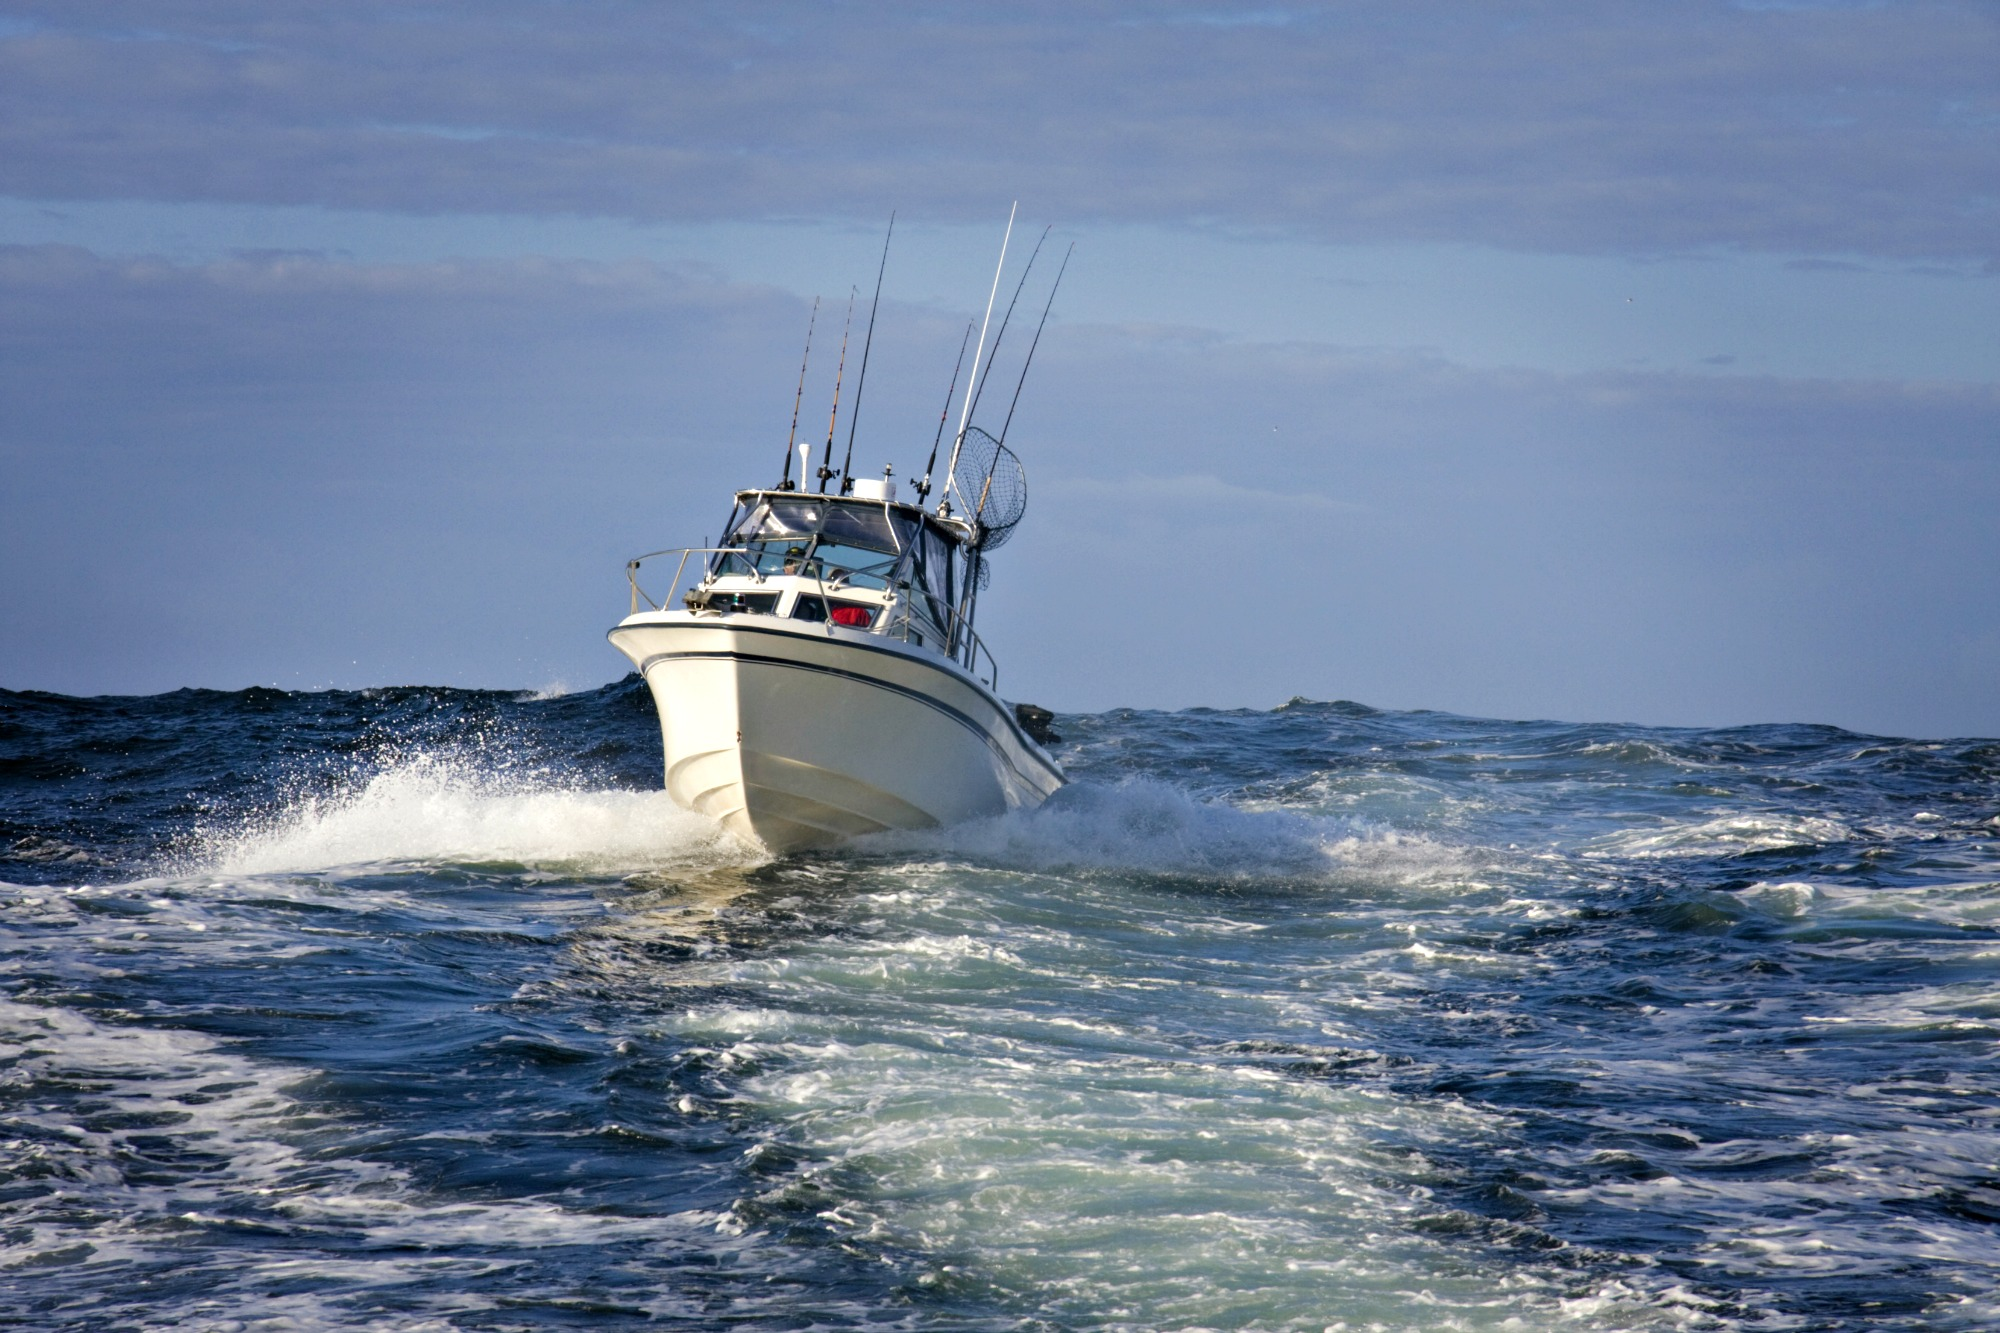 Gulf coast fishing in northwest florida and alabama a for Gulf angler fishing charters